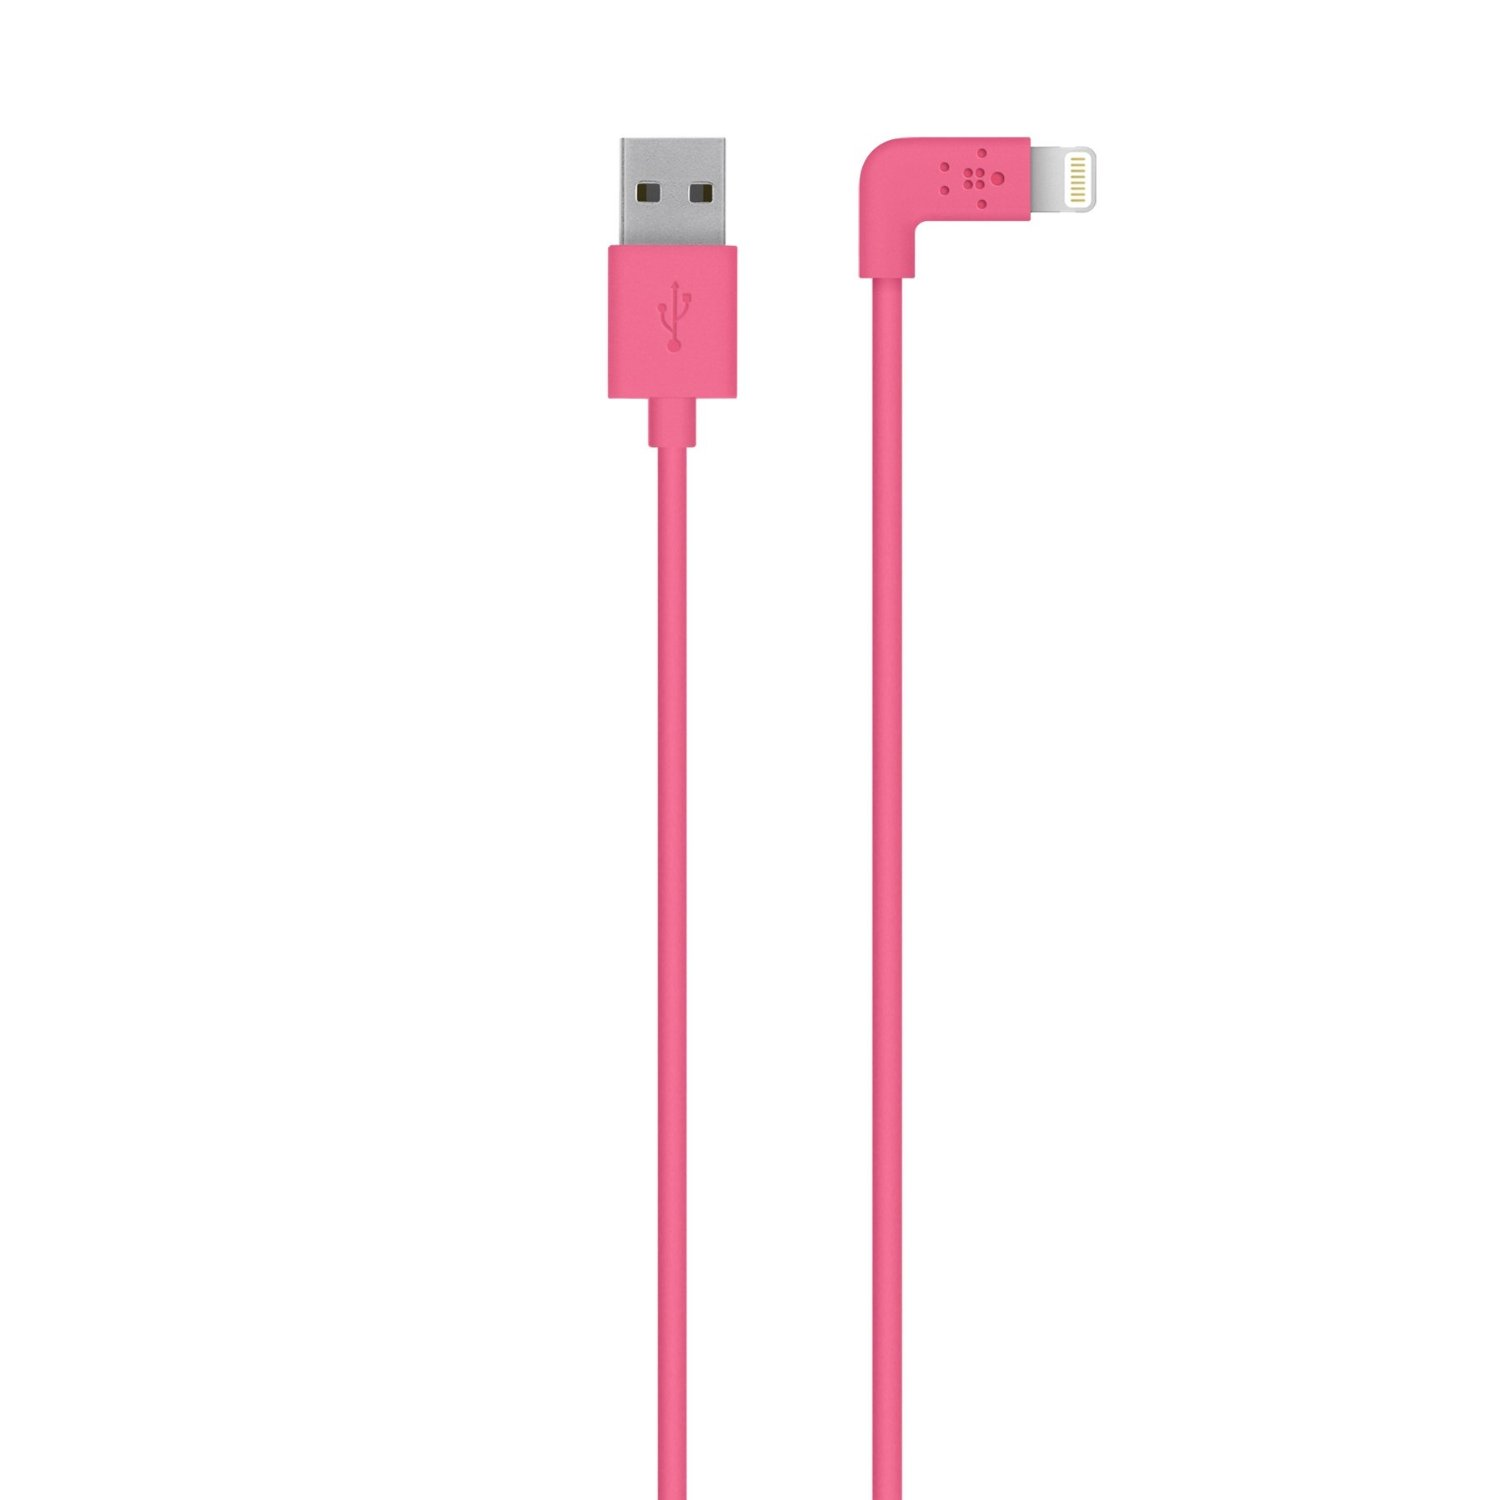 Amazon.com: Belkin Apple MFi Certified 4-Foot 90 Degree Lightning to USB Charge Sync Cable for iPhone 6S / 6S Plus, iPhone 6 / 6 Plus, iPhone 5 / 5S /5c and iPod touch 5th Gen (Pink): Cell Phones & Accessories